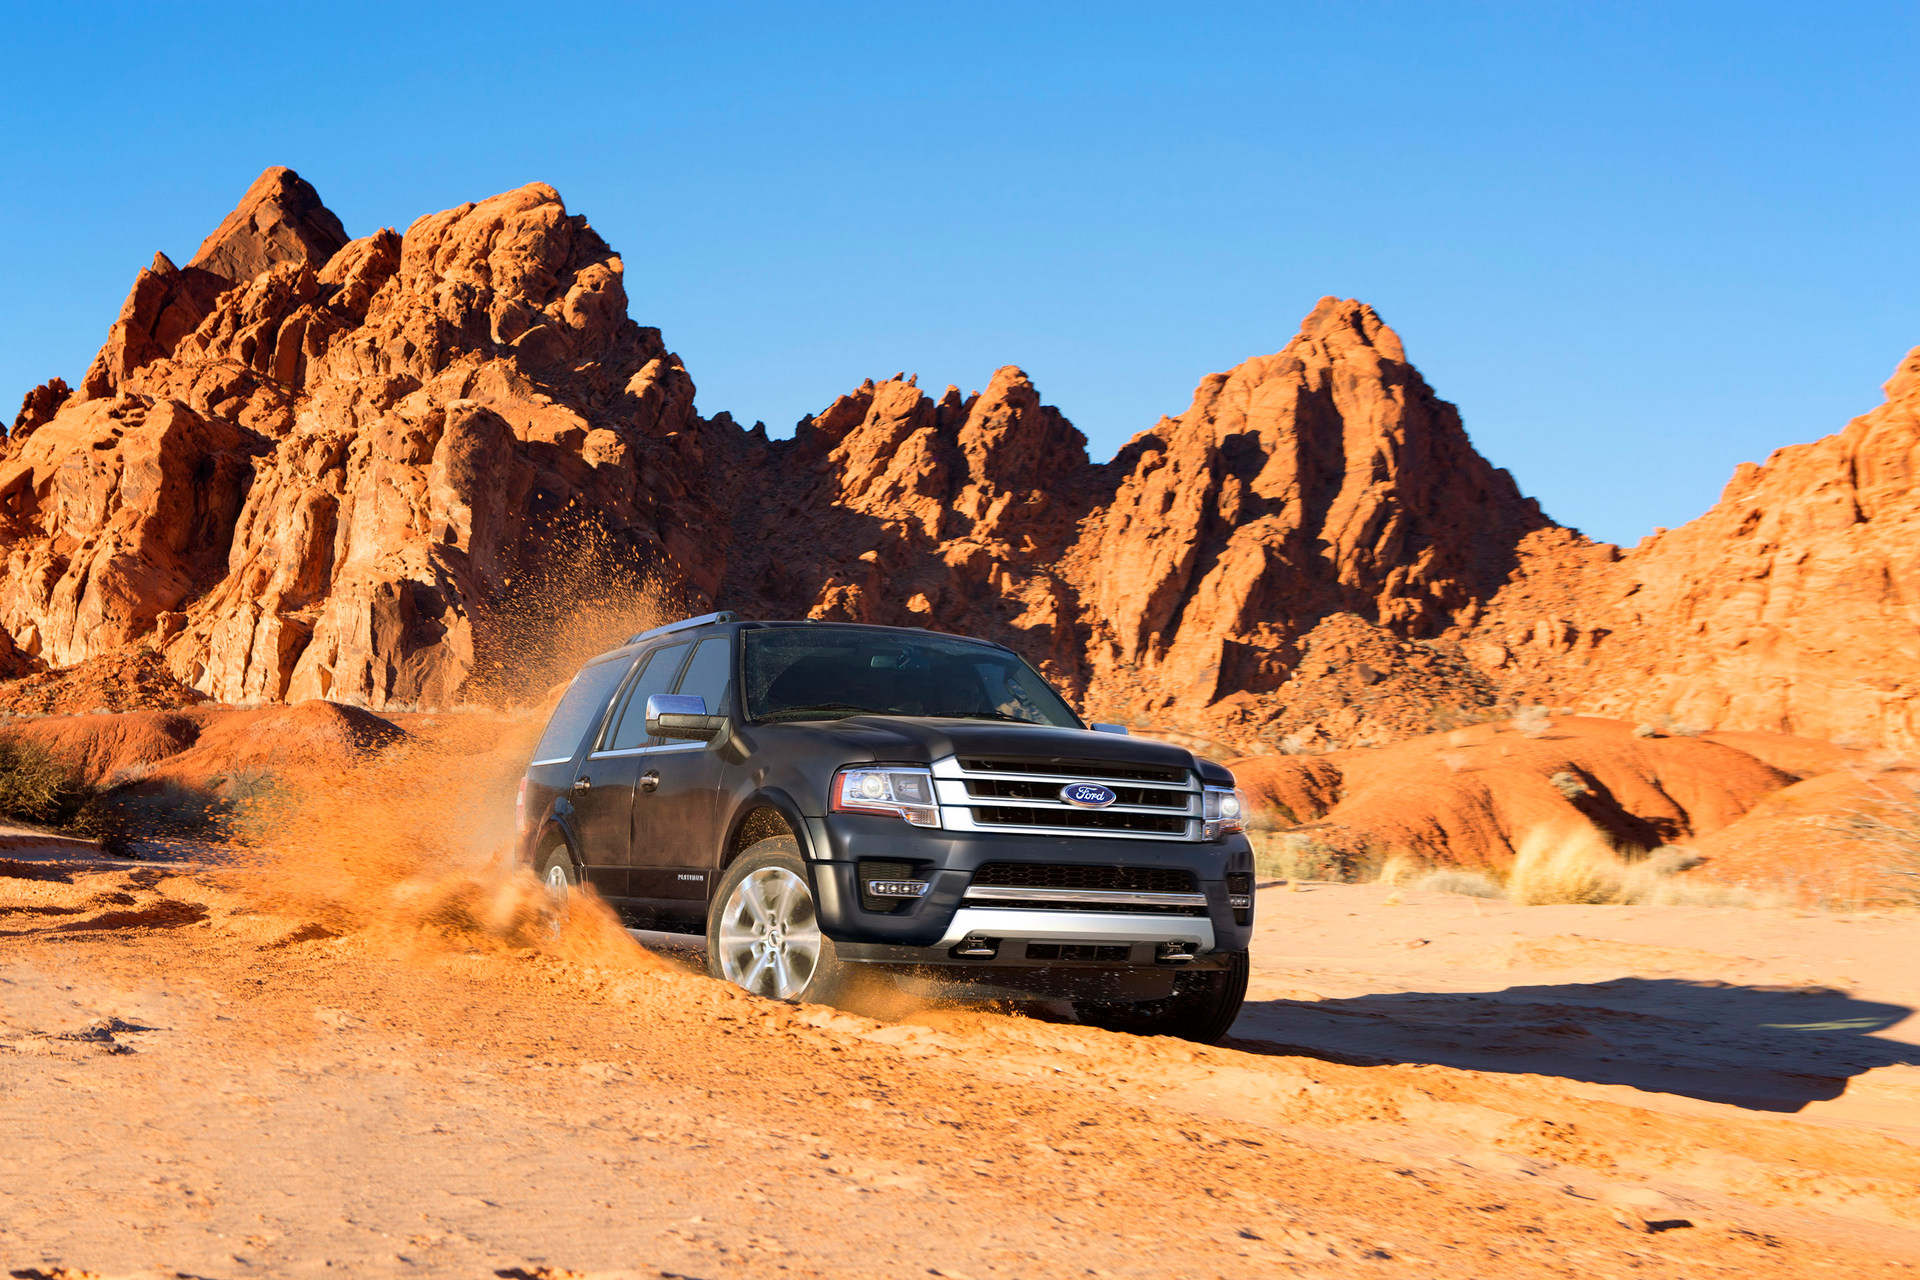 2016 Ford Expedition © Ford Motor Company